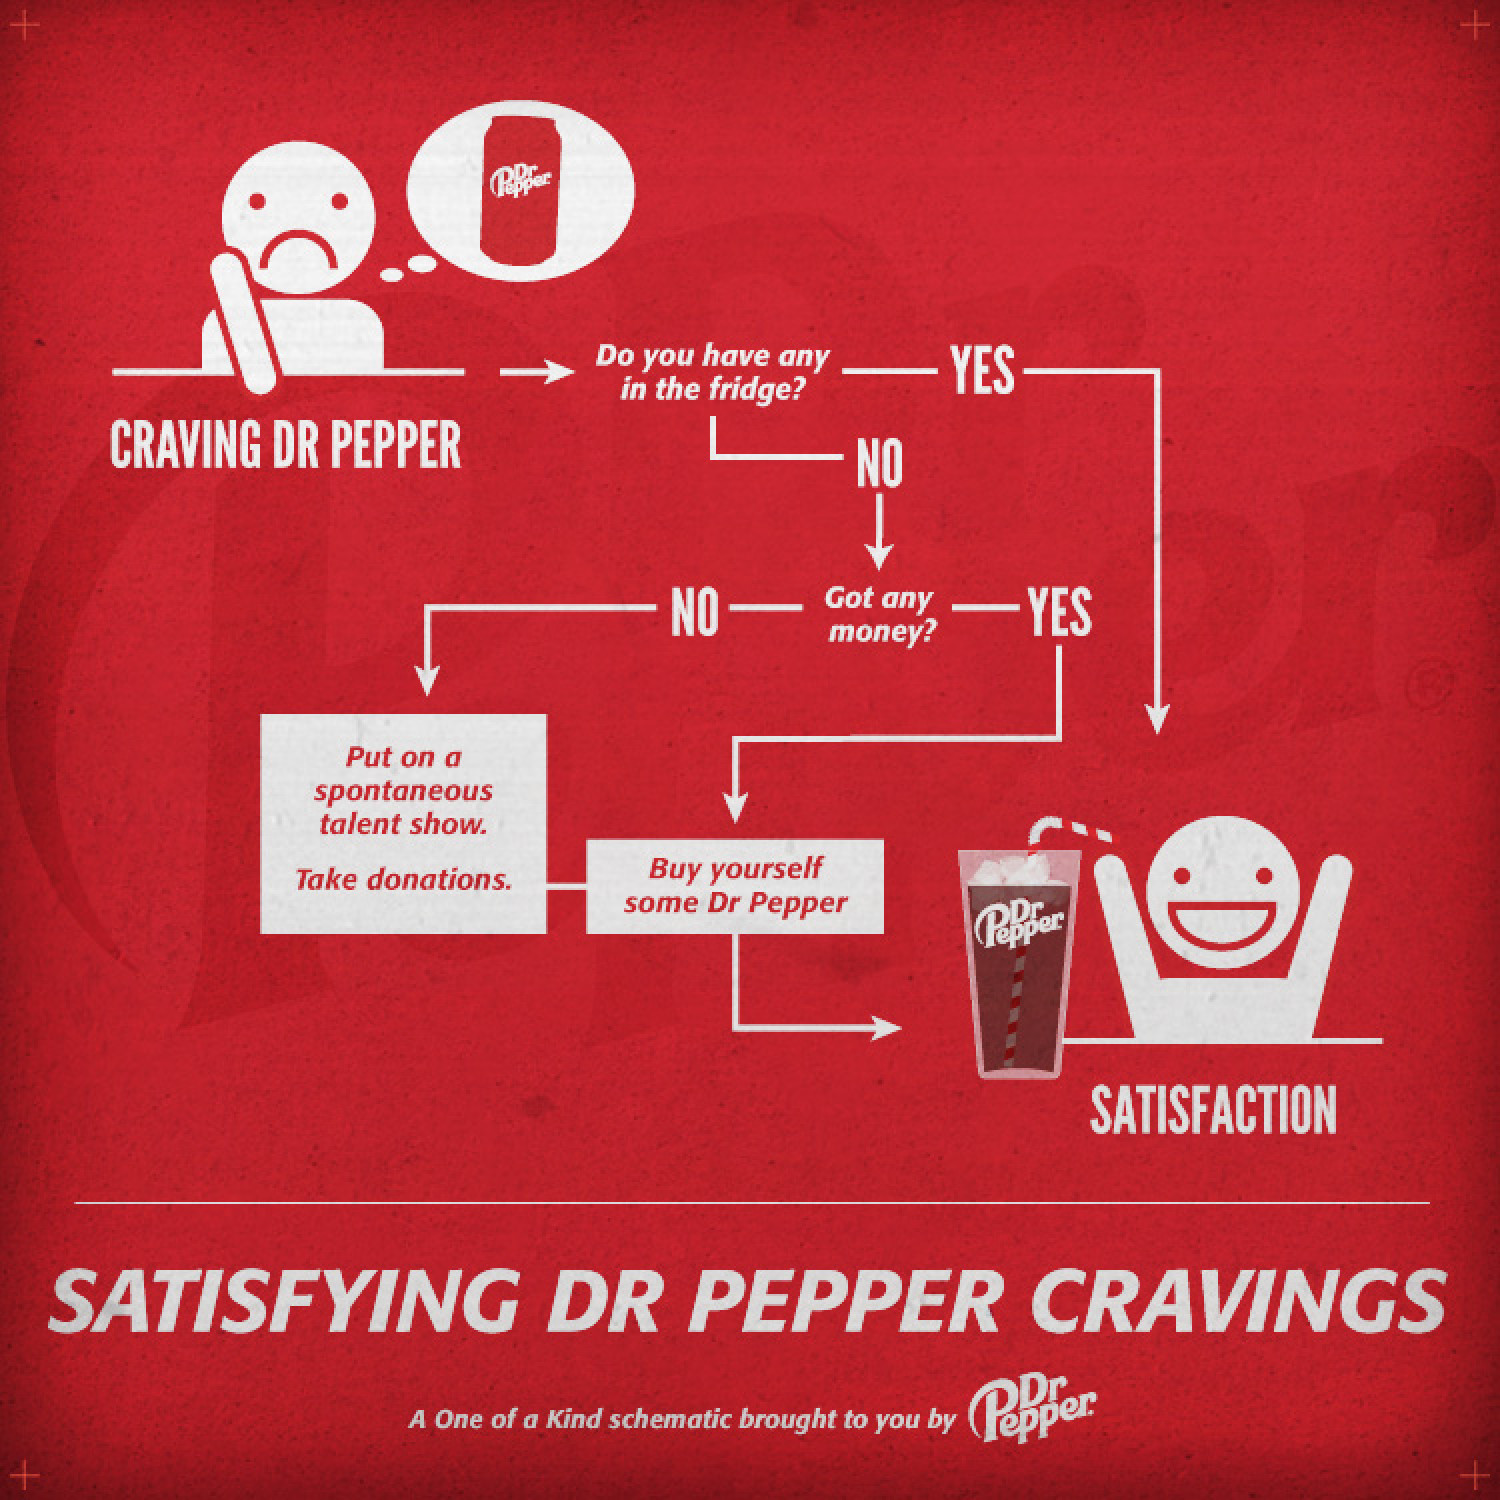 Dr Pepper - Satisfying Cravings Infographic